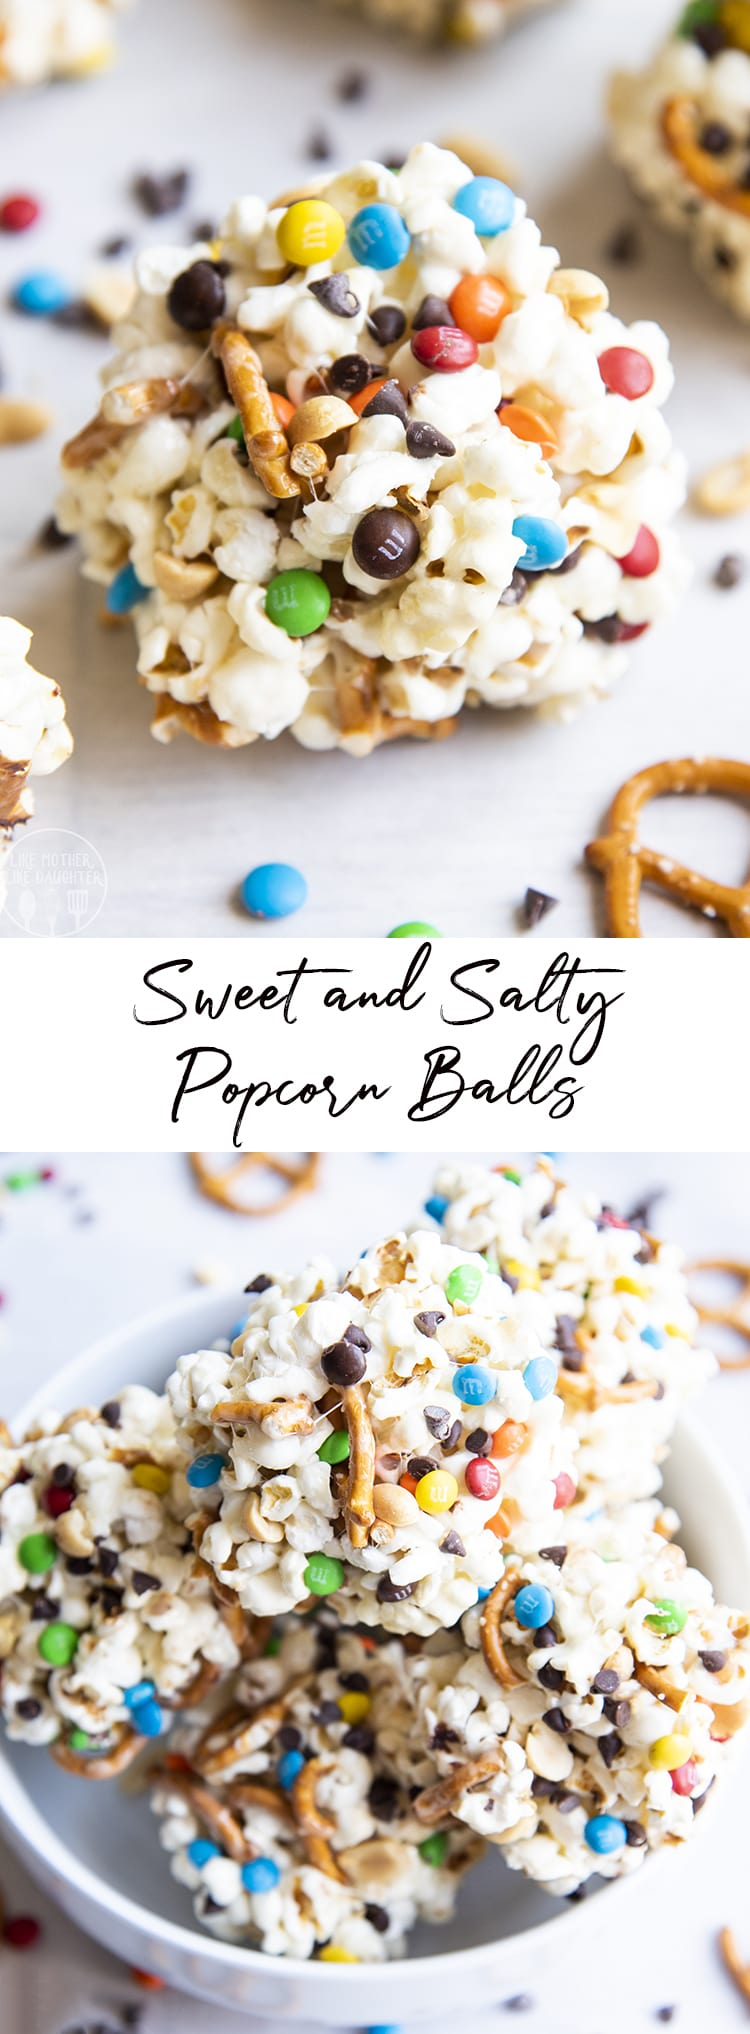 These sweet and salty popcorn balls are gooey and chewy marshmallow popcorn balls packed full of salty pretzels, peanuts, m&ms and chocolate chips for the perfect sweet and salty treat